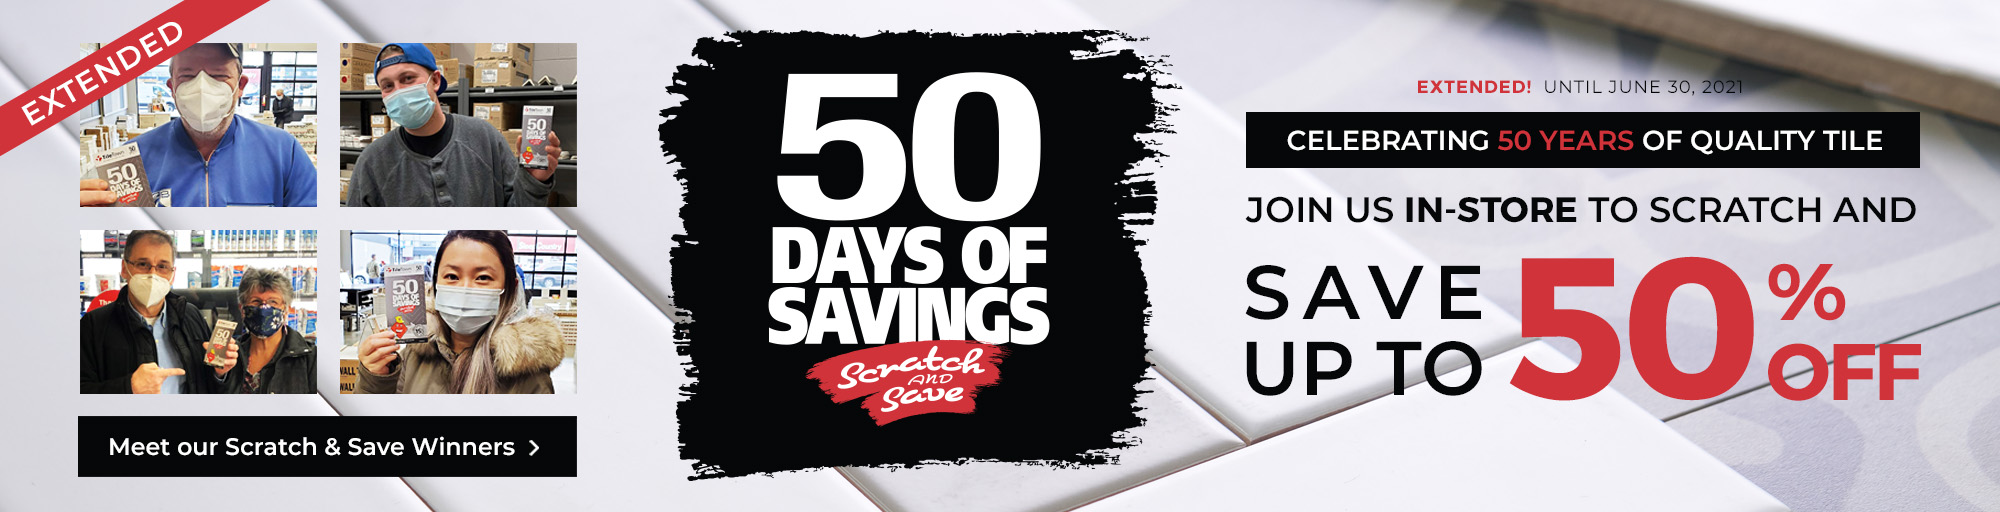 50 Days of Savings